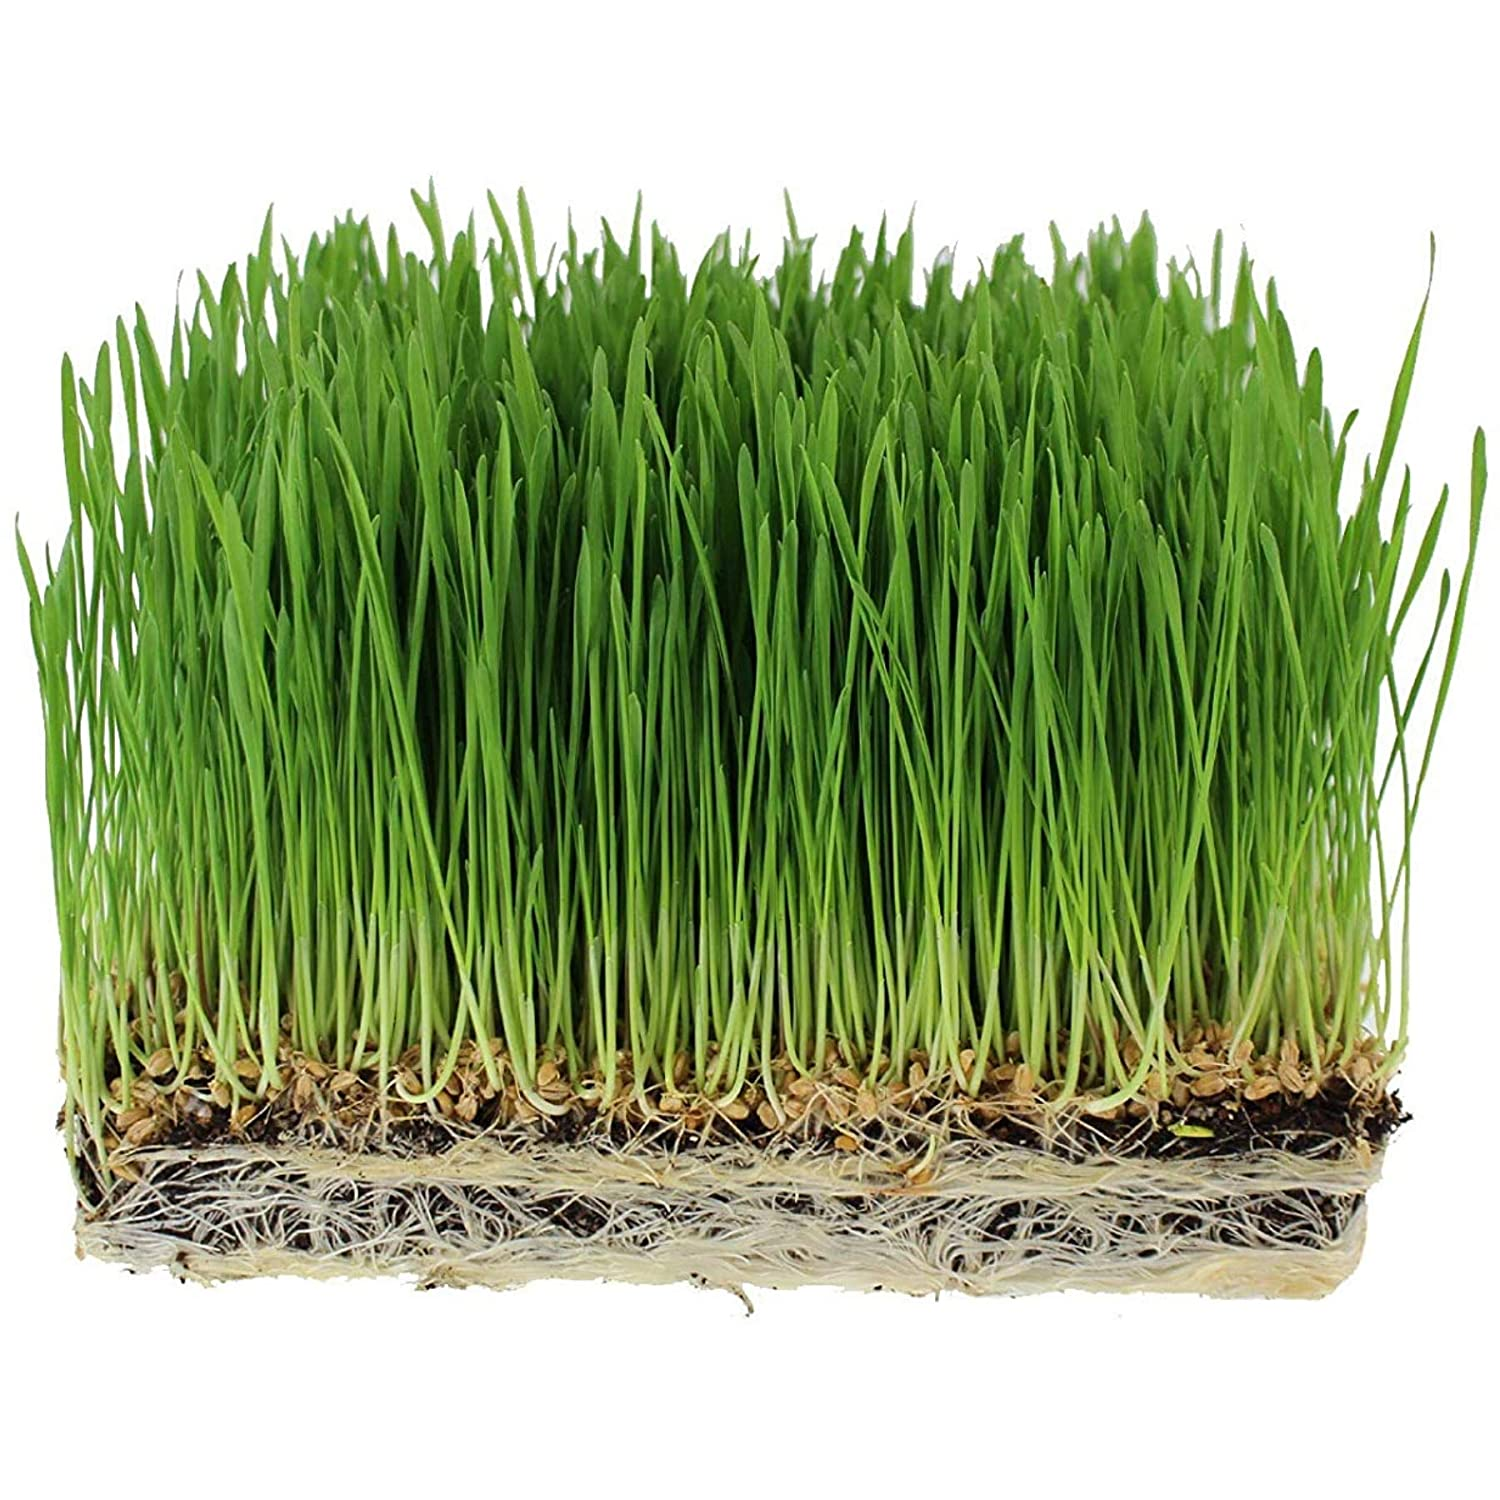 Handy Pantry Organic Wheatgrass Seeds - For Wheat Grass, Cat Grass, Food Storage & More - Hard Red Wheat (1/2 Pound)